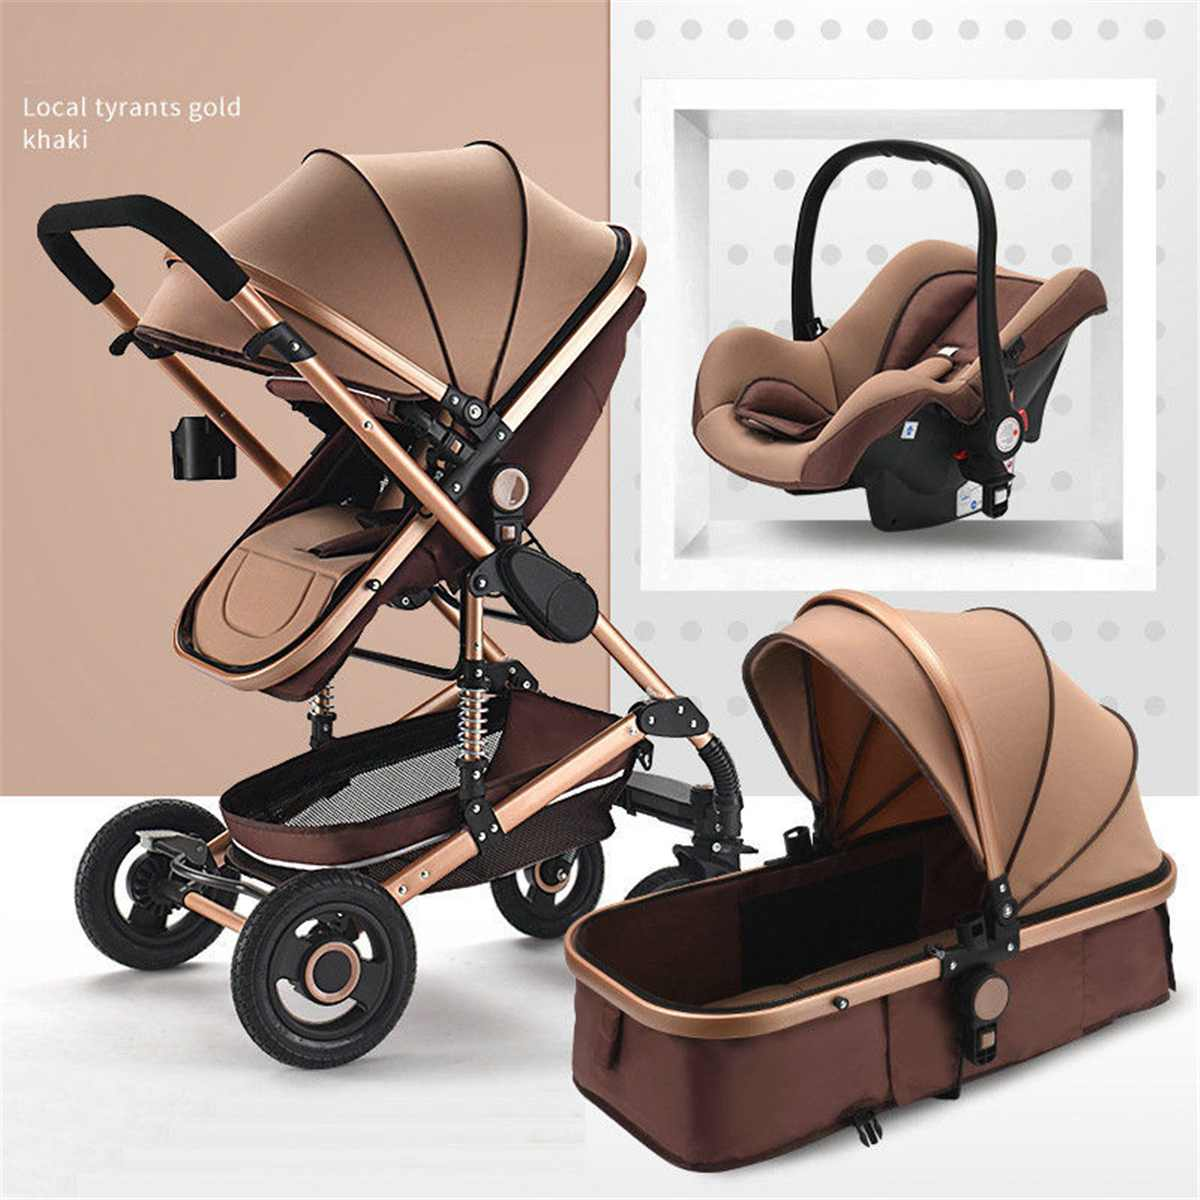 3 In 1 Baby Stroller Bassinet Car Safety Seat Foldable Carriage Pushchair Lying Sleeping Basket Highview Pram 0-4 year 4 Seasons